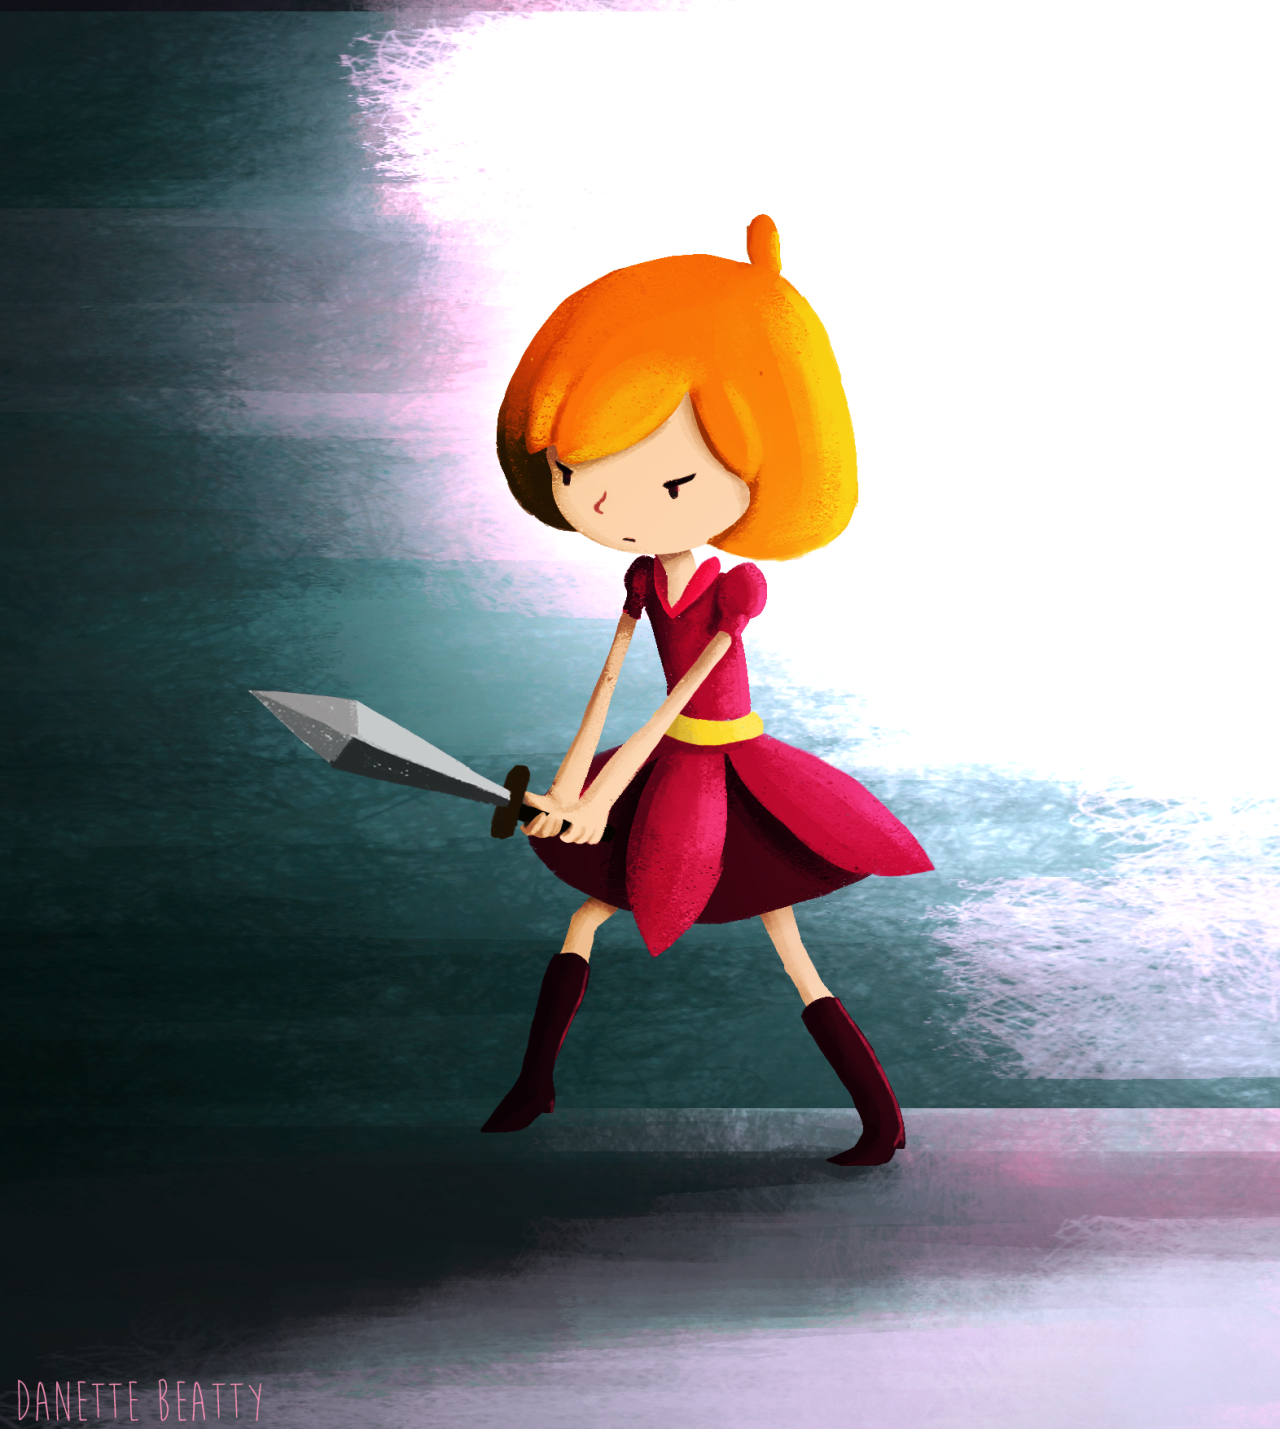 Marta is fierce today >:D daily doodle #46